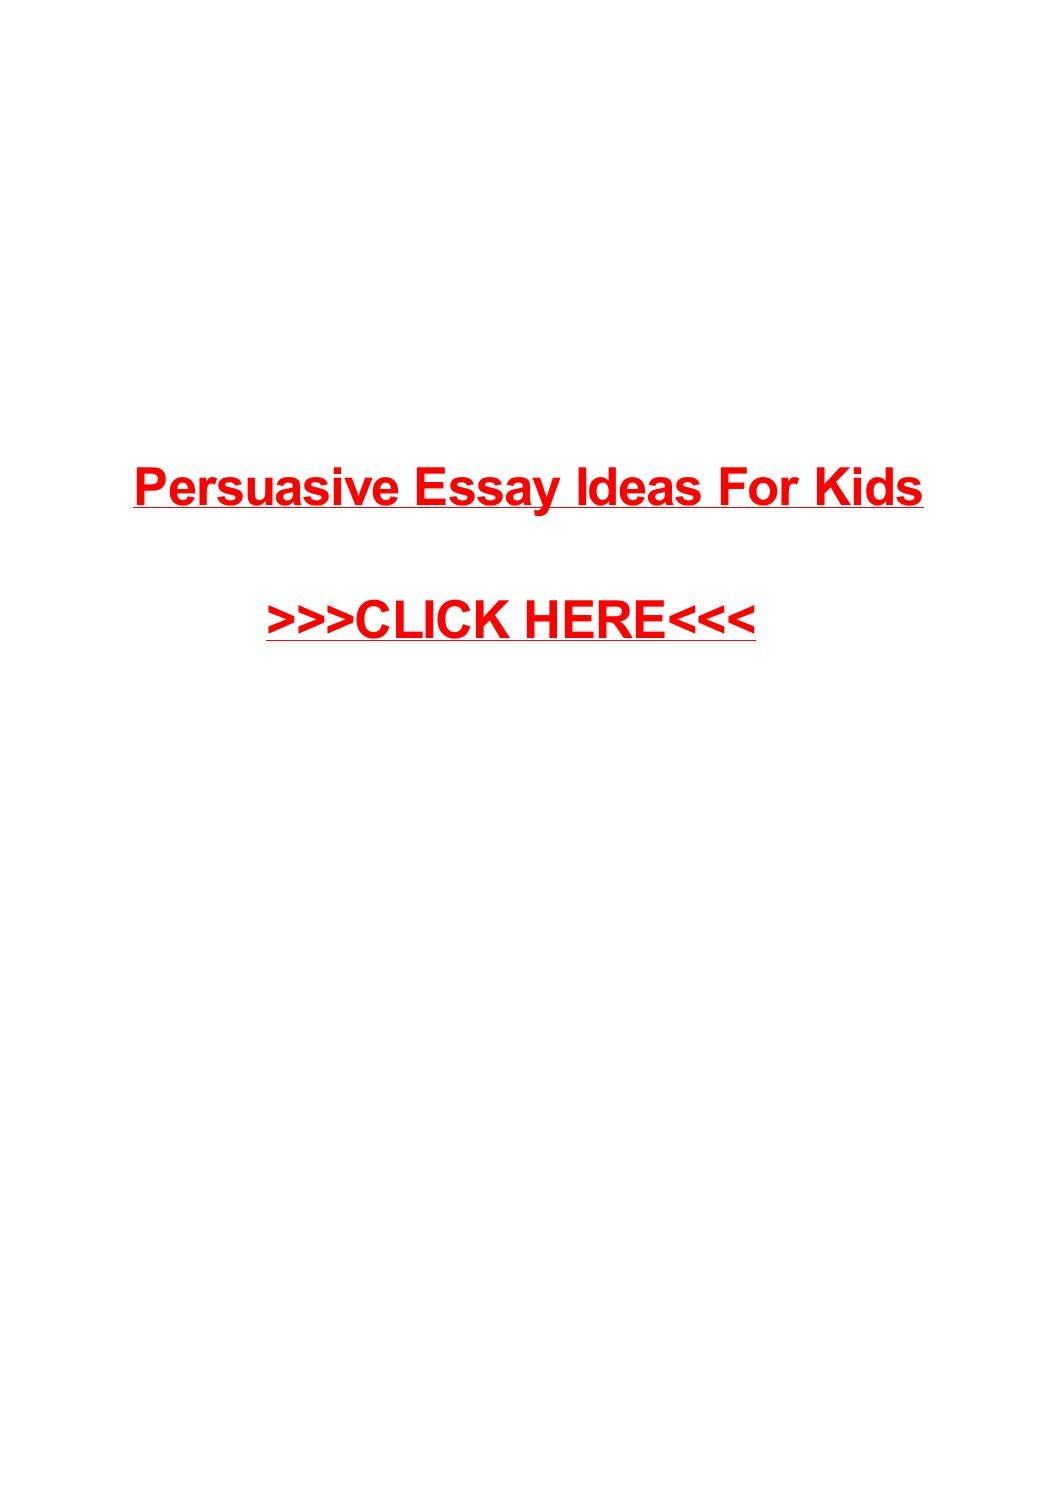 argumentative essay examples for kids